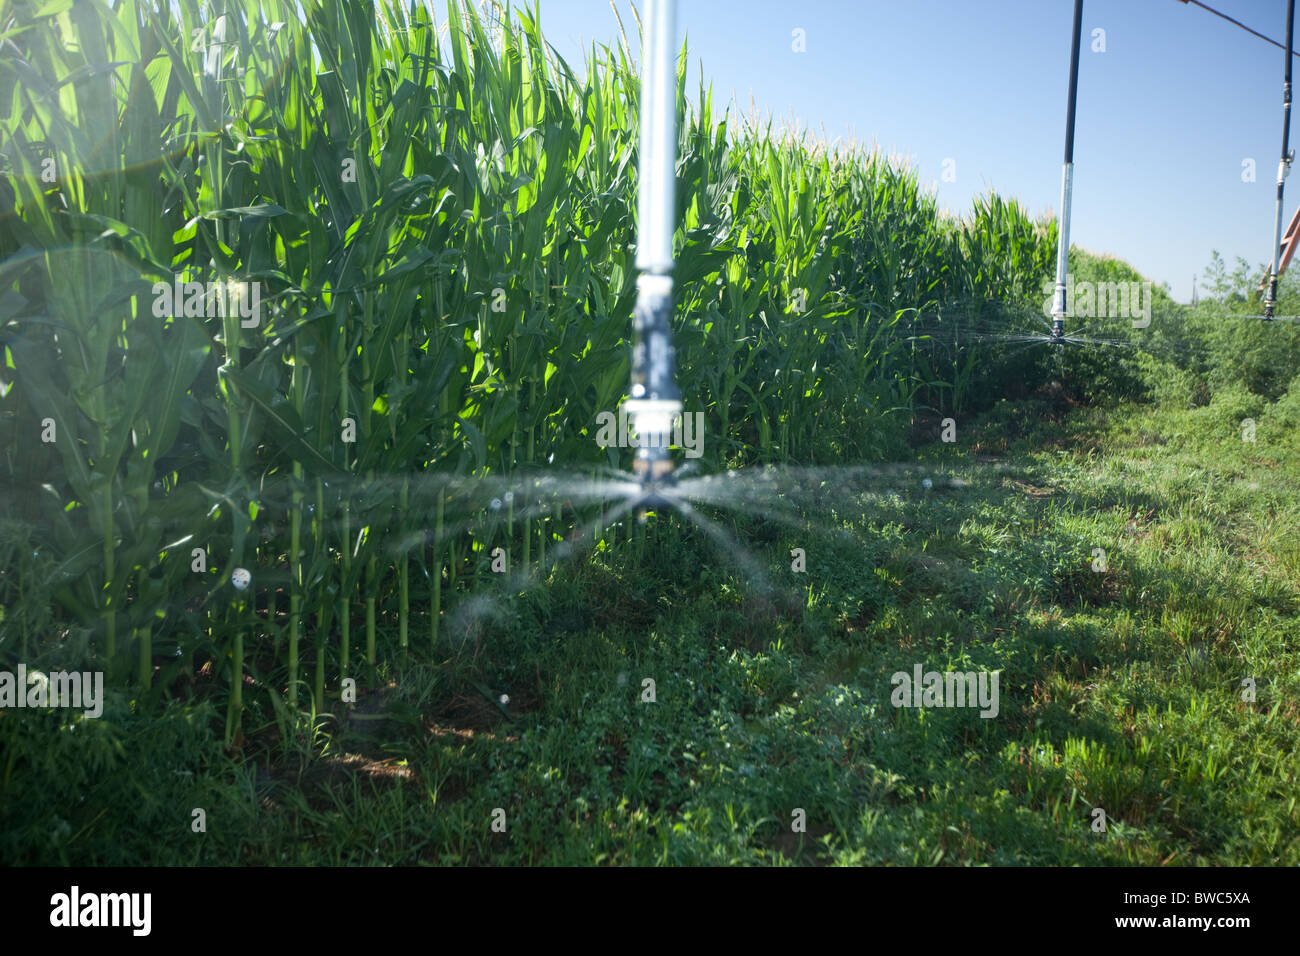 Sprinkler head sprays water onto field of corn in agricultural area of Texas Panhandle. - Stock Image